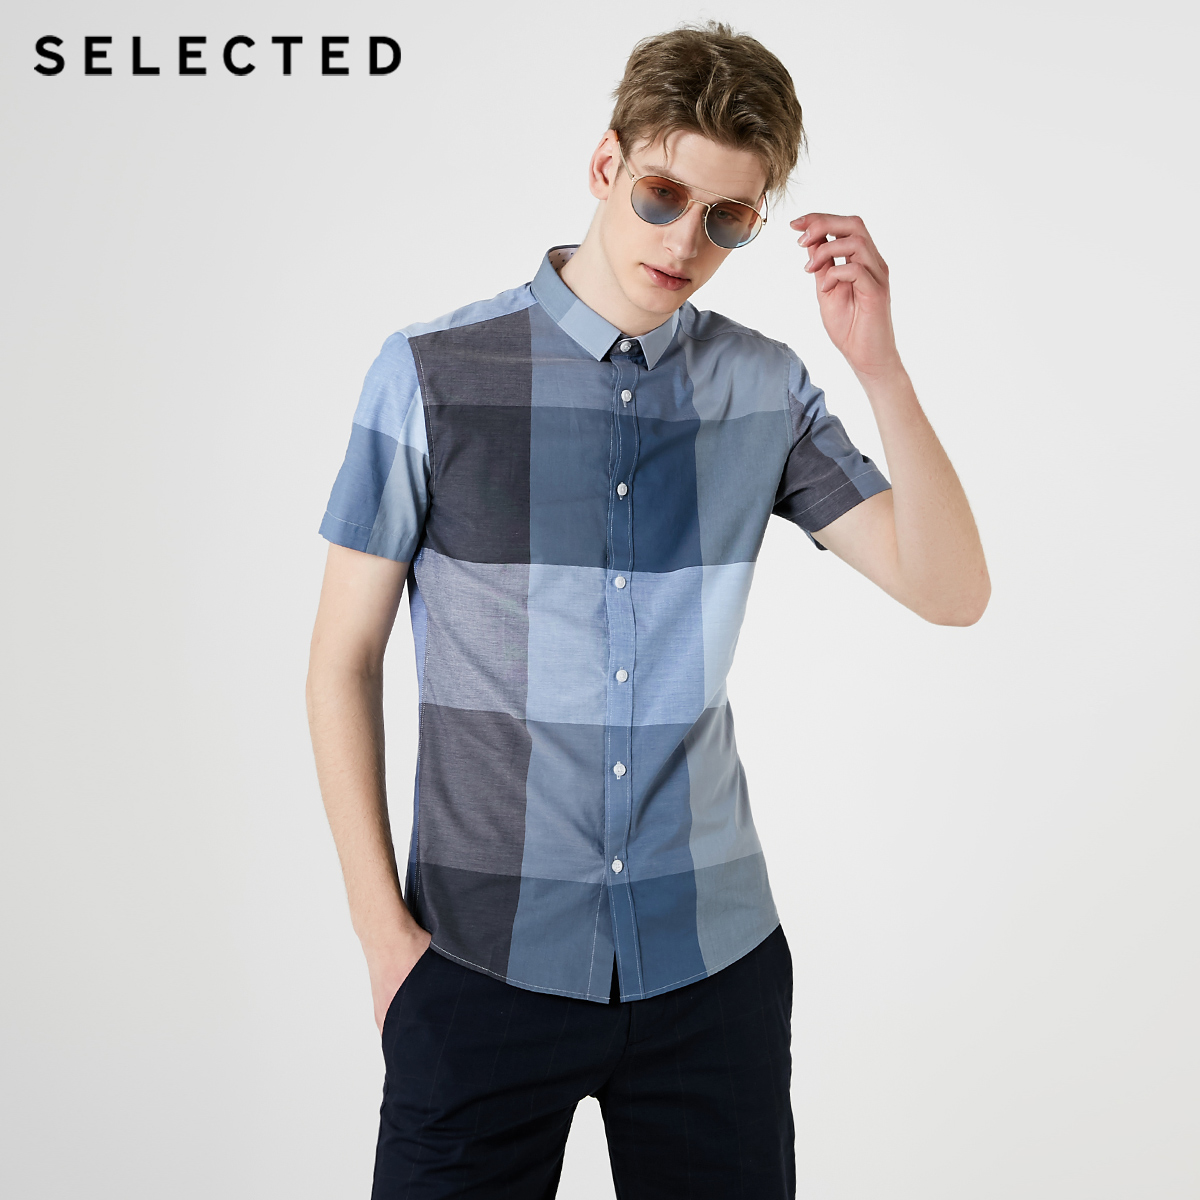 SELECTED Men's 100% Cotton Slim Fit Plaid Trend Handsome Slim Casual Short-sleeved Checked Shirt S|419204536